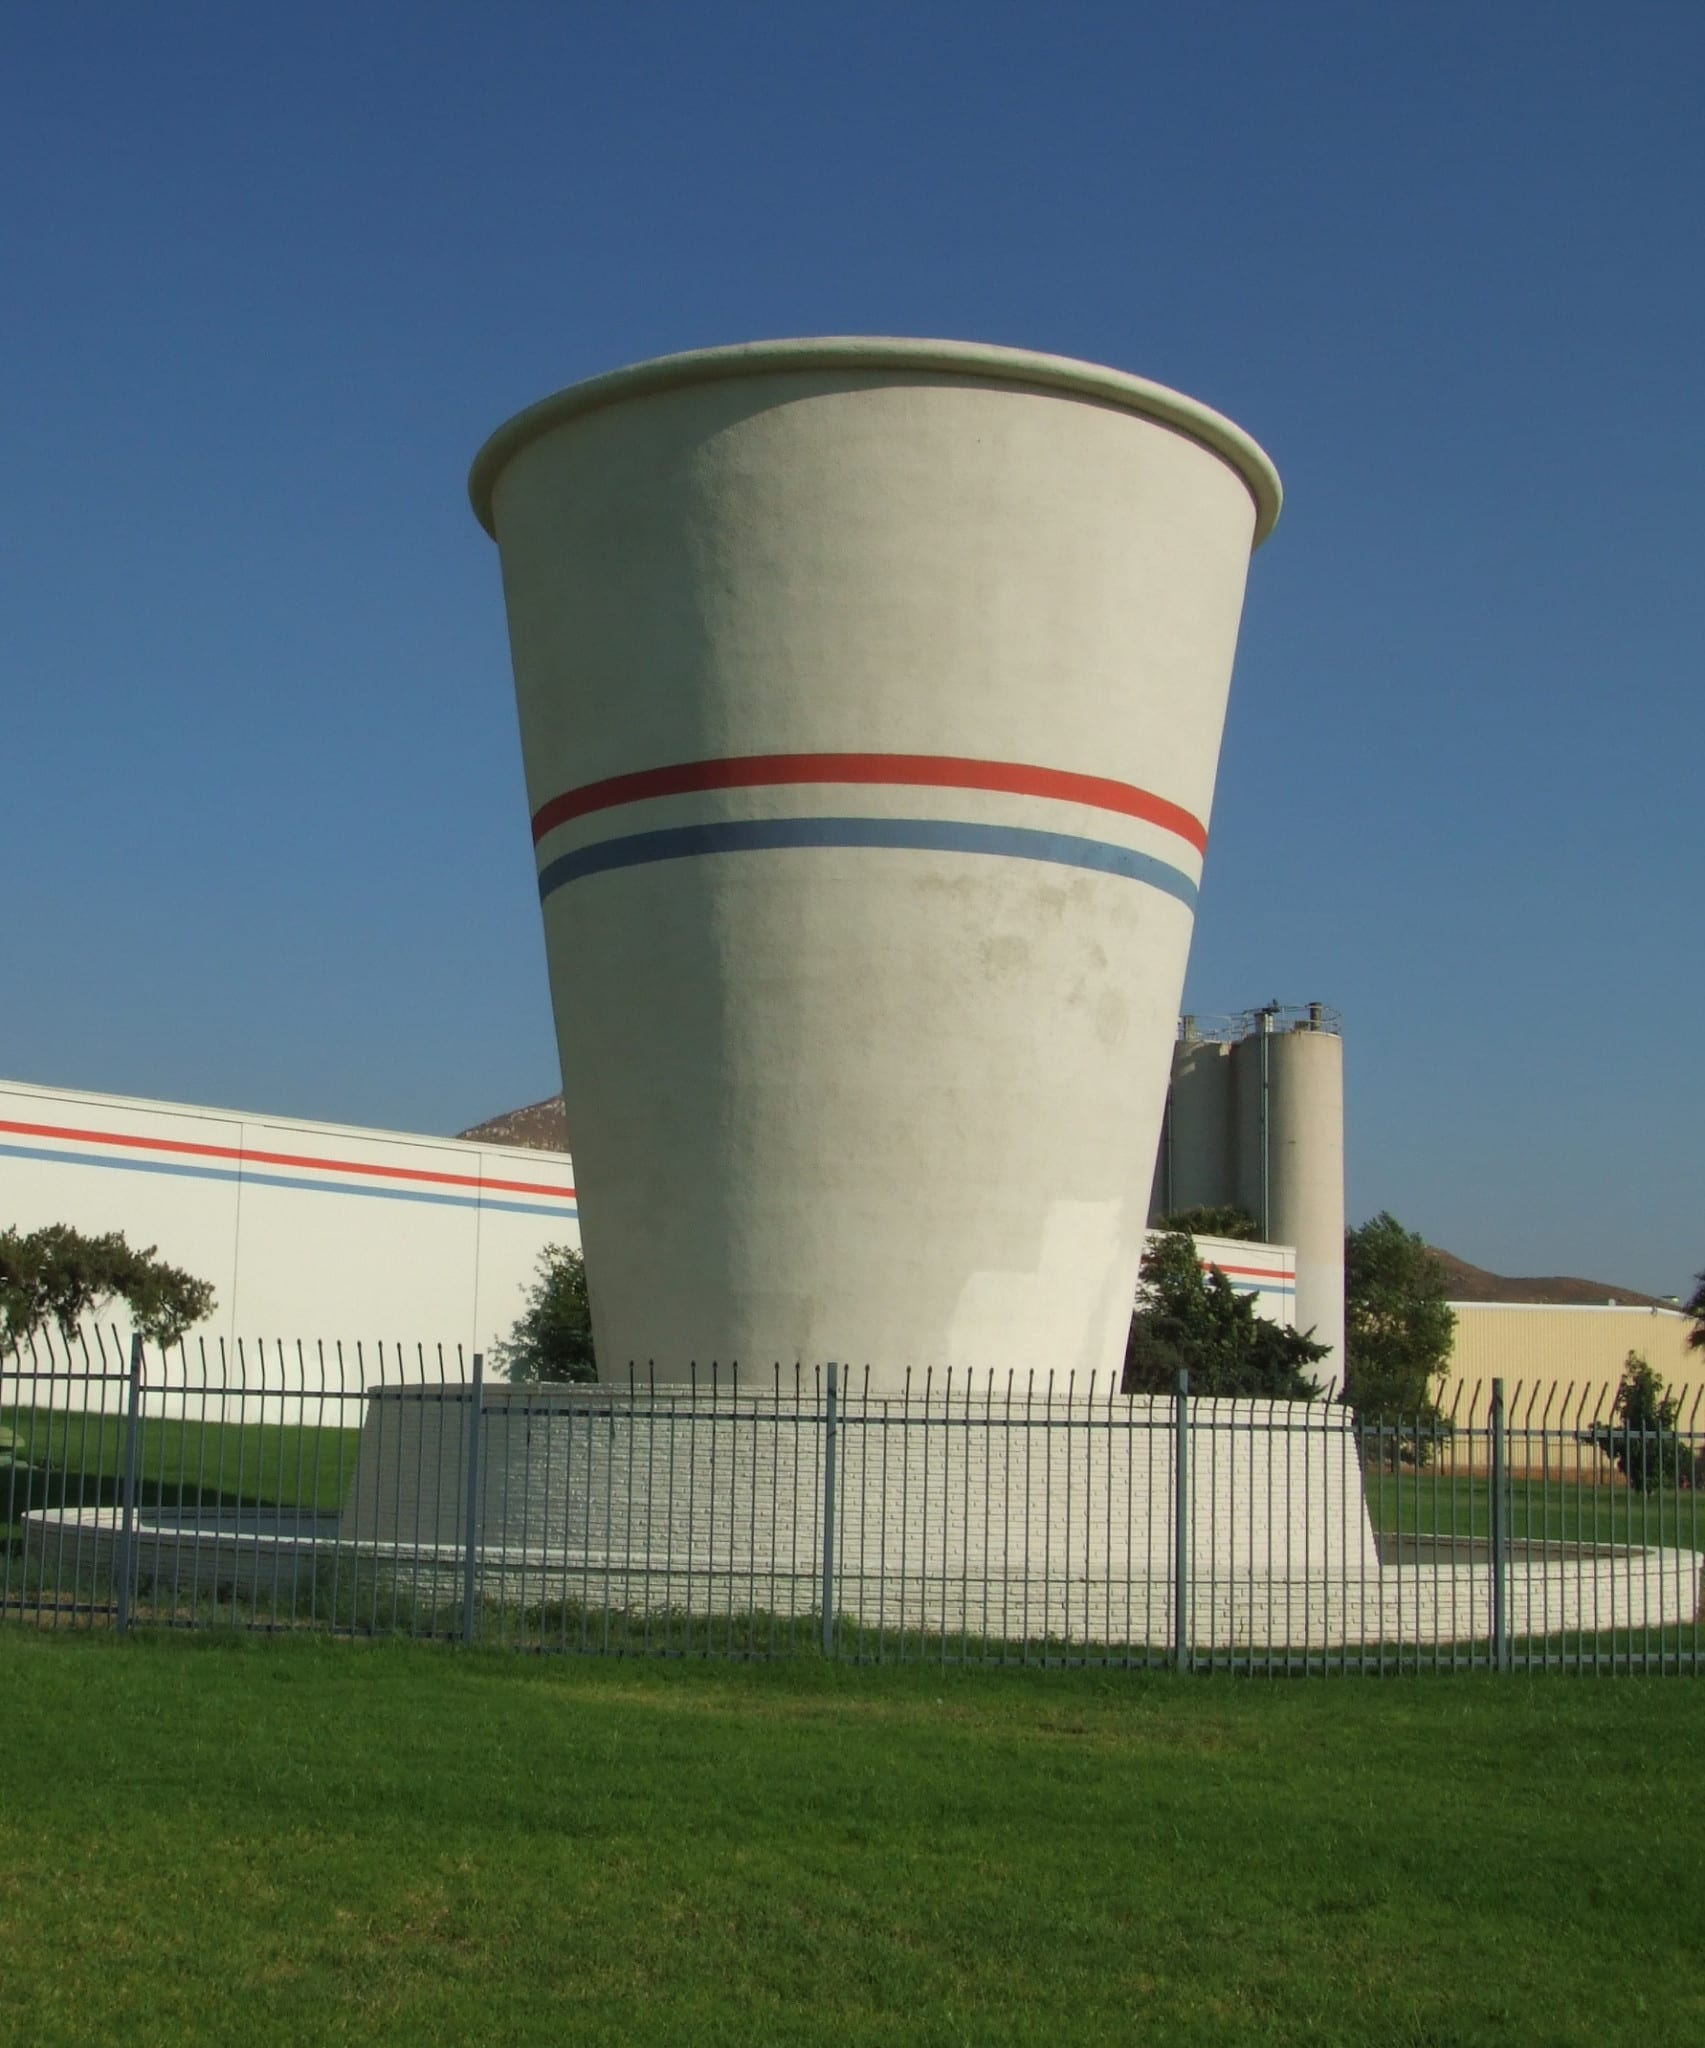 The world's biggest Dixie Cup